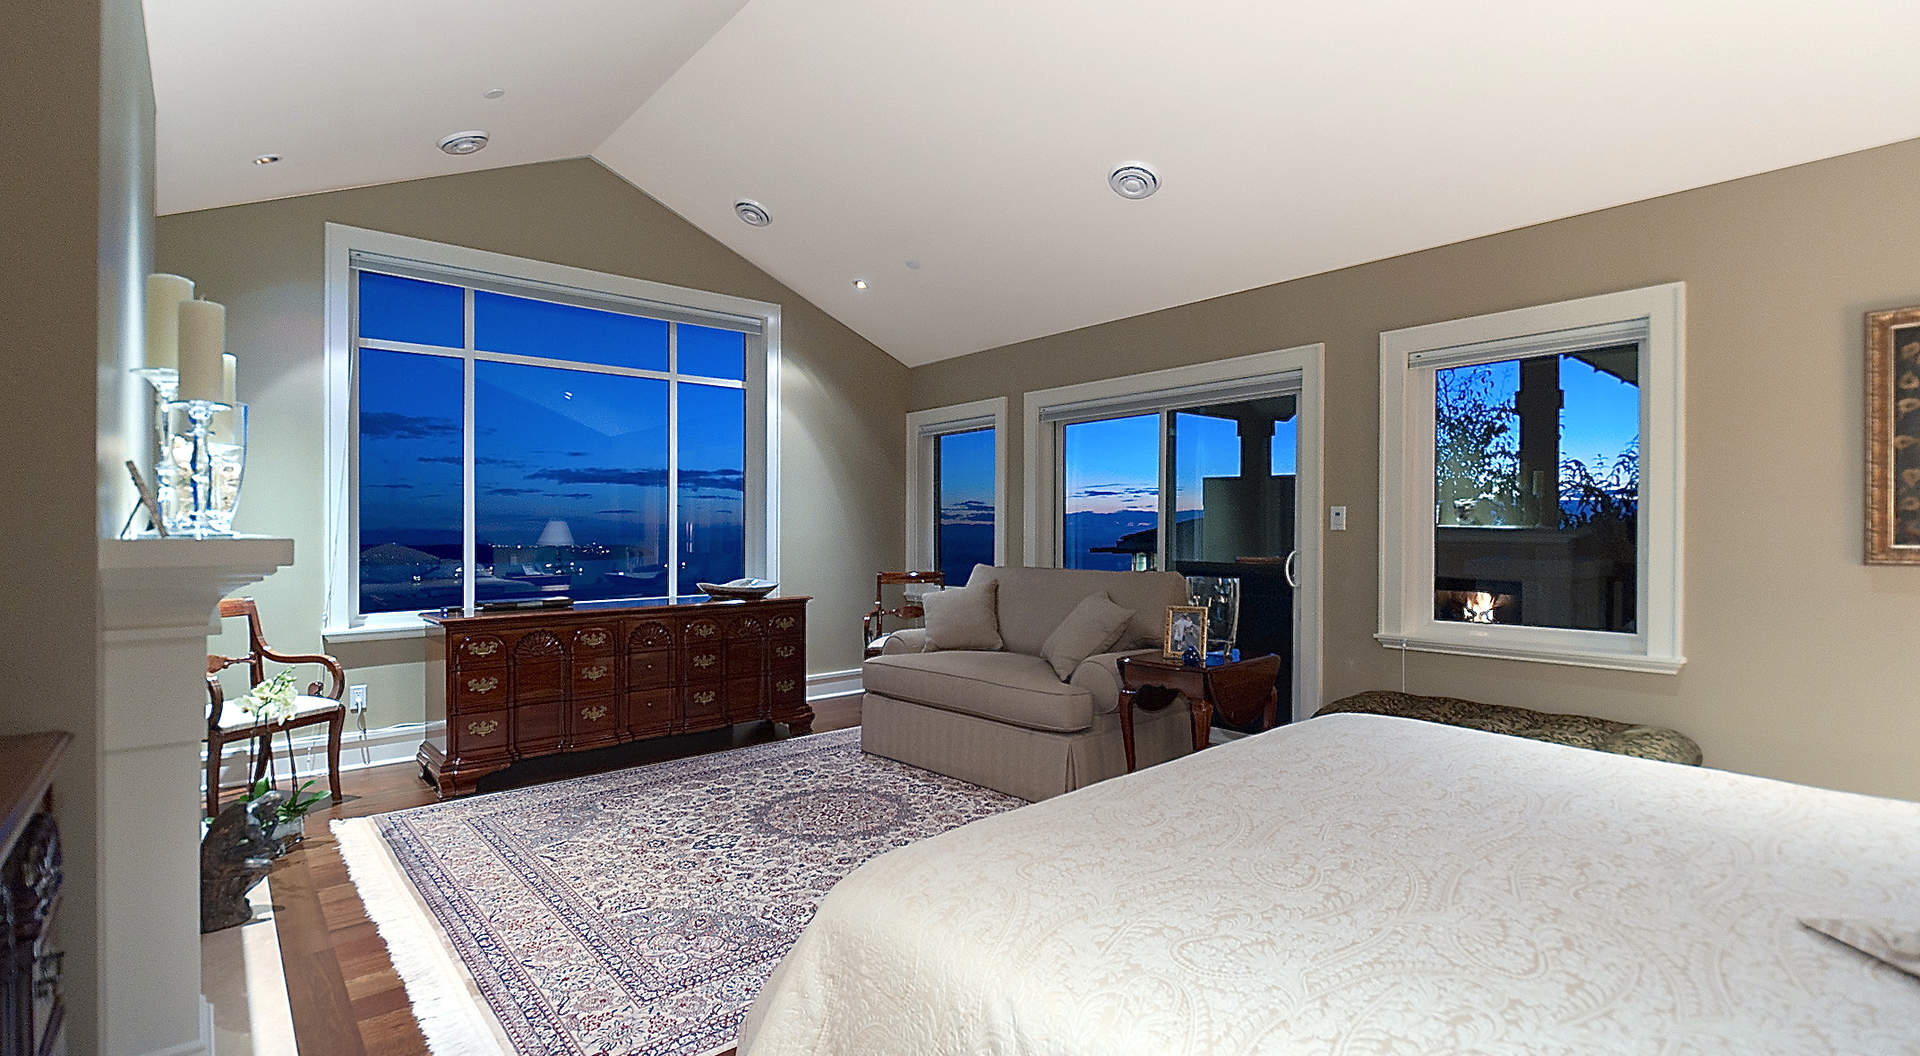 Gorgeous Master Suite con techos abovedados y zona de estar